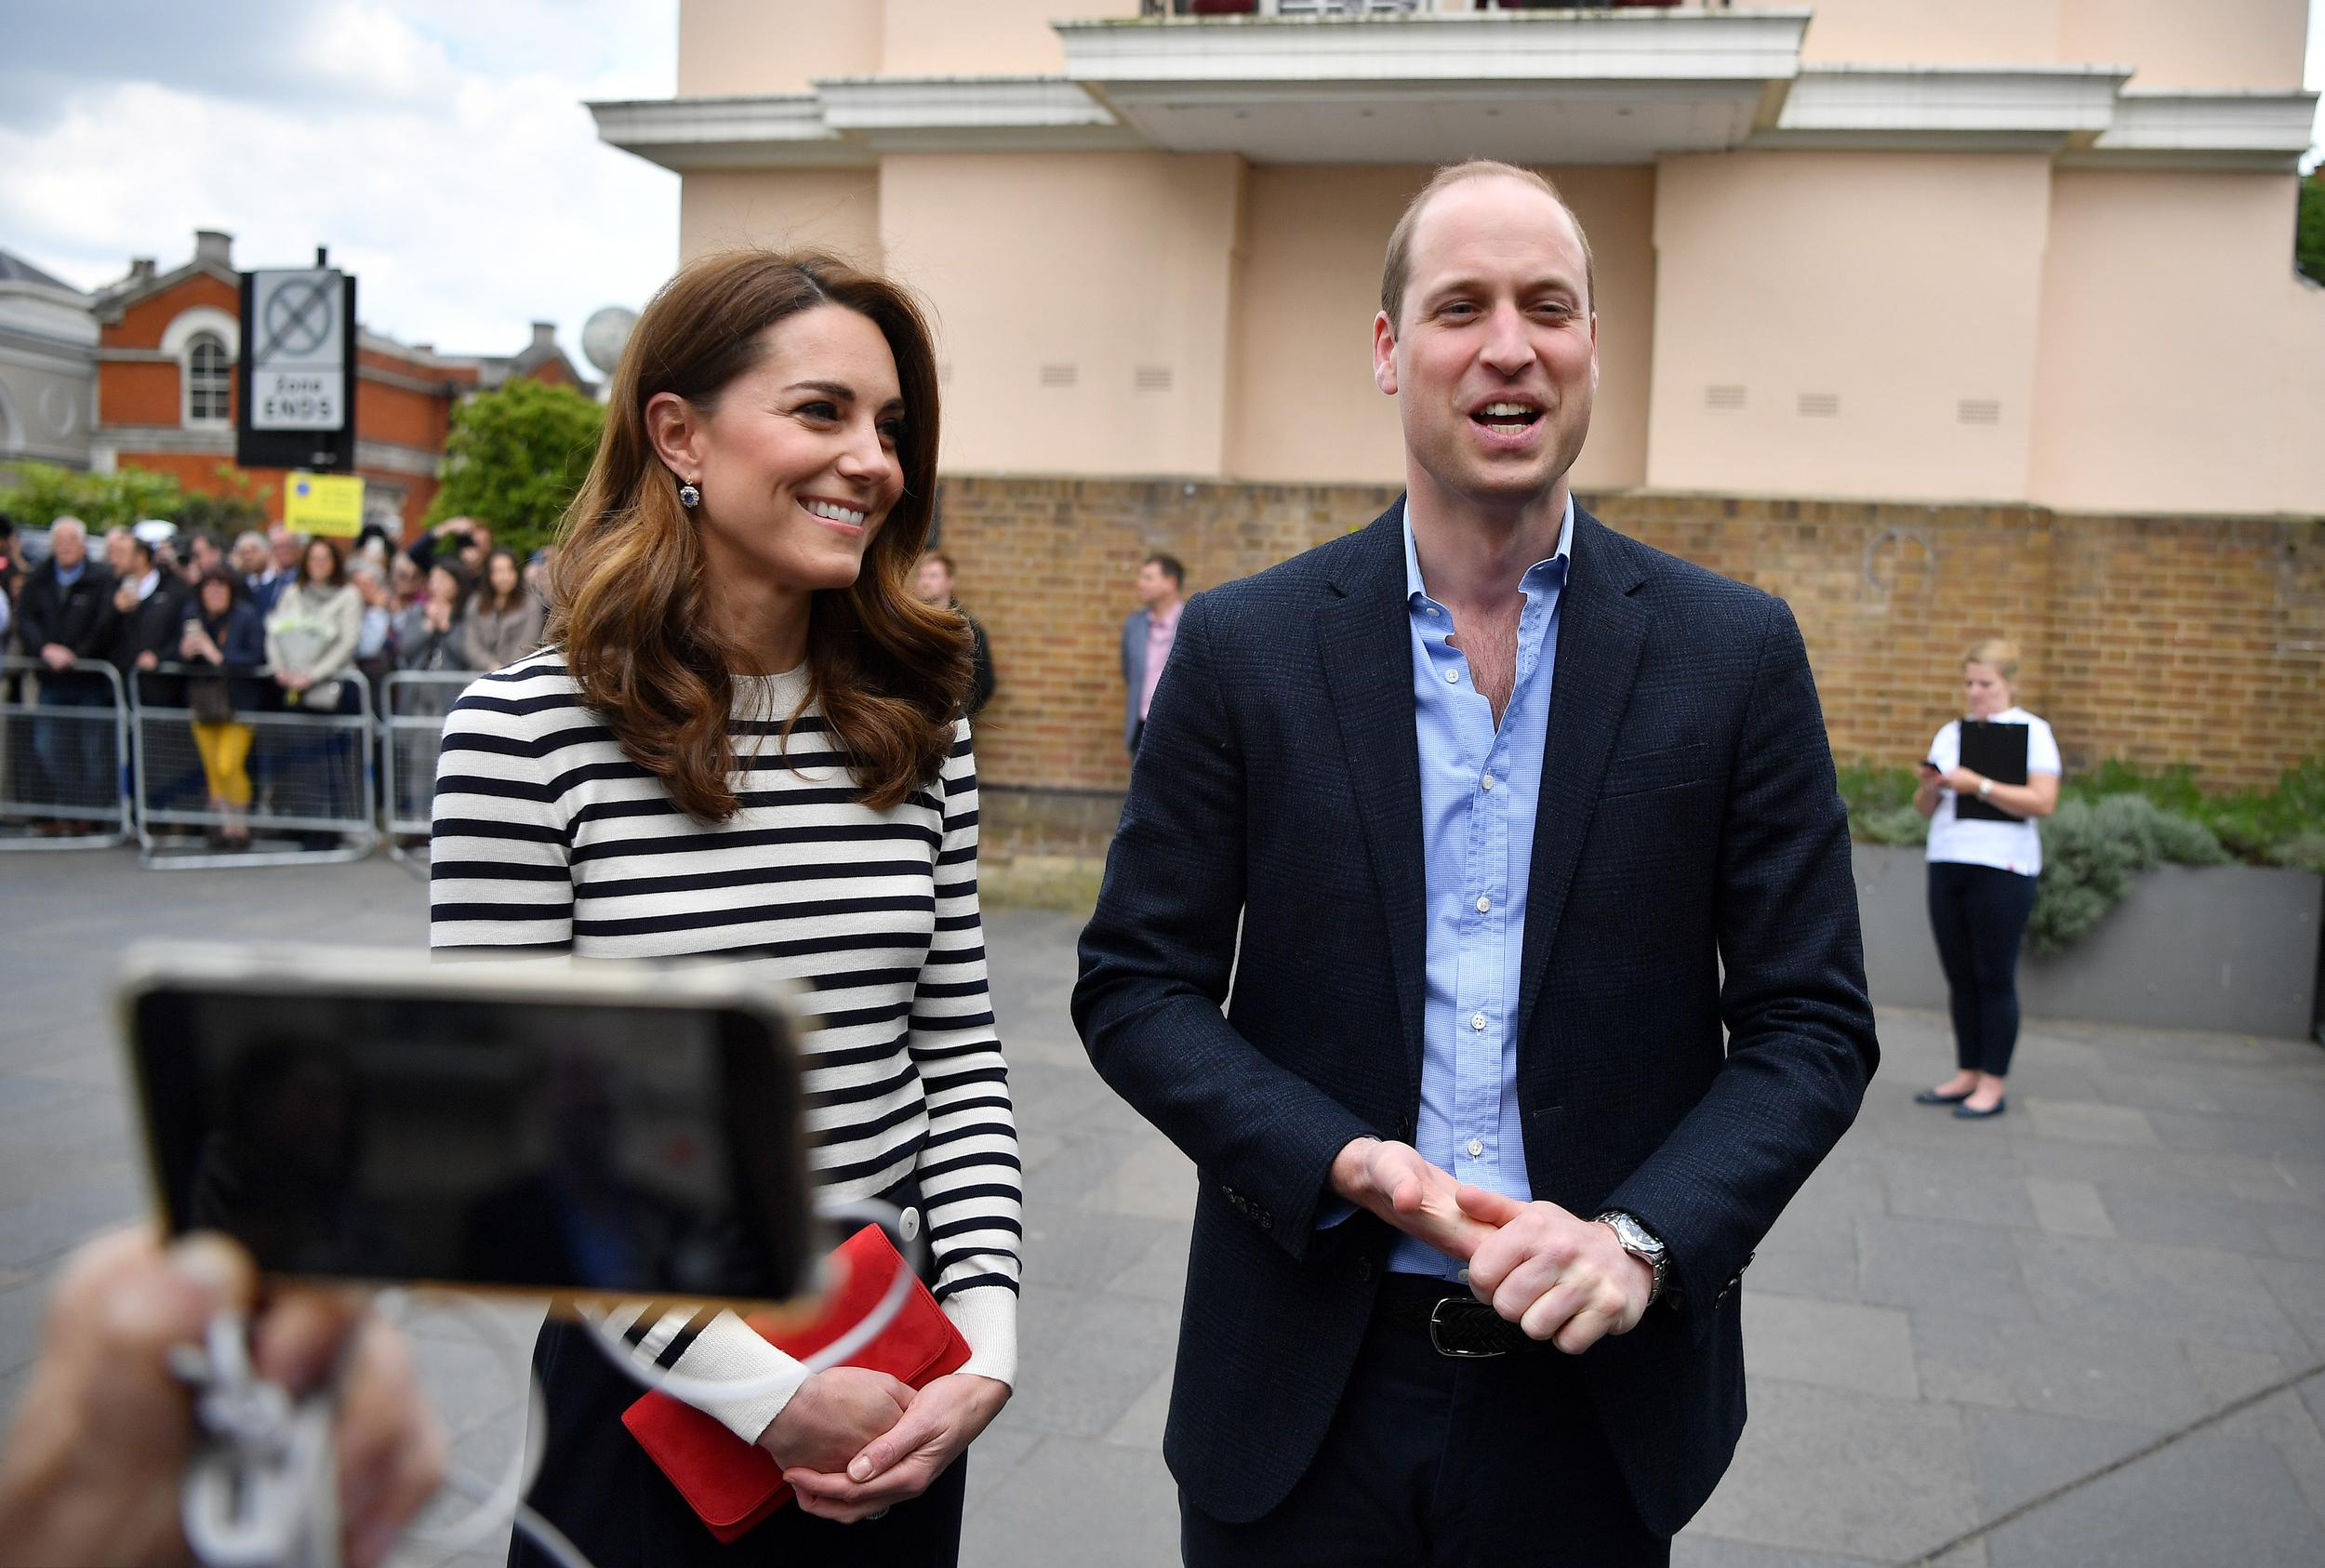 The Duke and Duchess of Cambridge talk to members of the media about their newborn nephew as they arrive to launch the King's Cup Regatta trophy at the Cutty Sark, London.